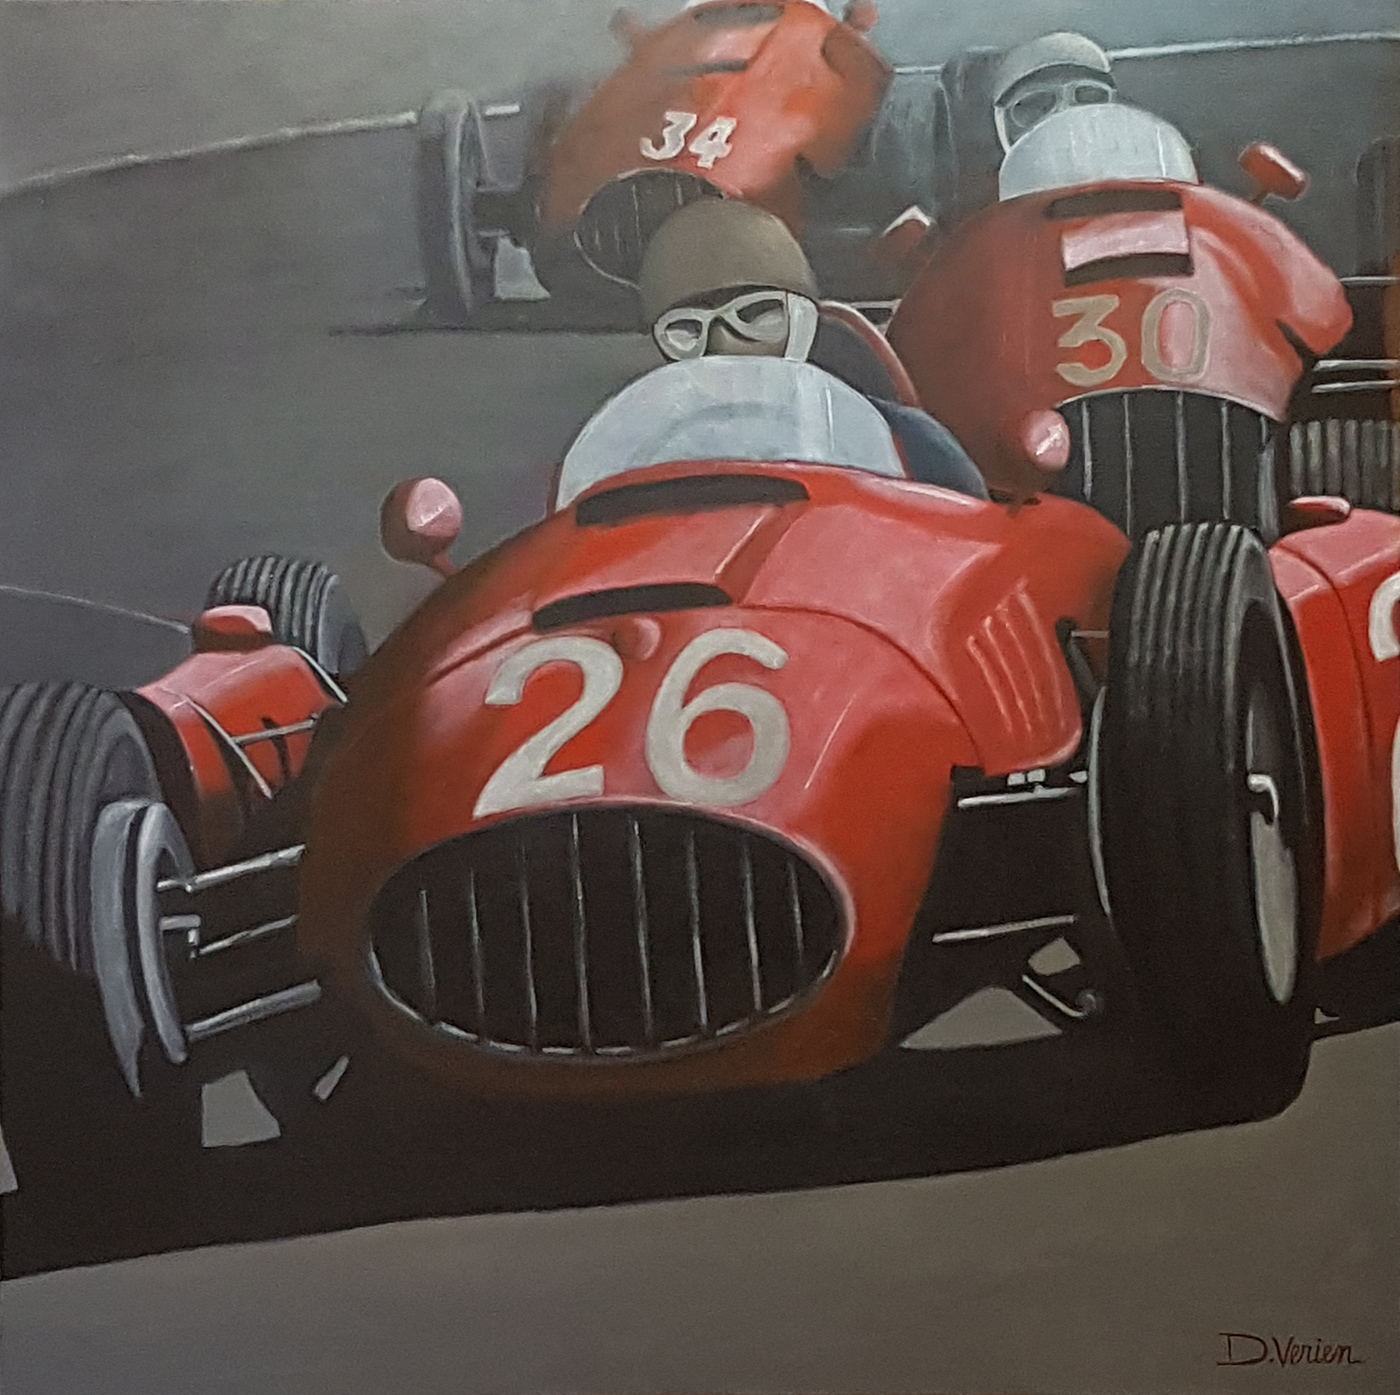 Maserati,tableau D.Verien, gallery race cars paintings, peinture voiture de course